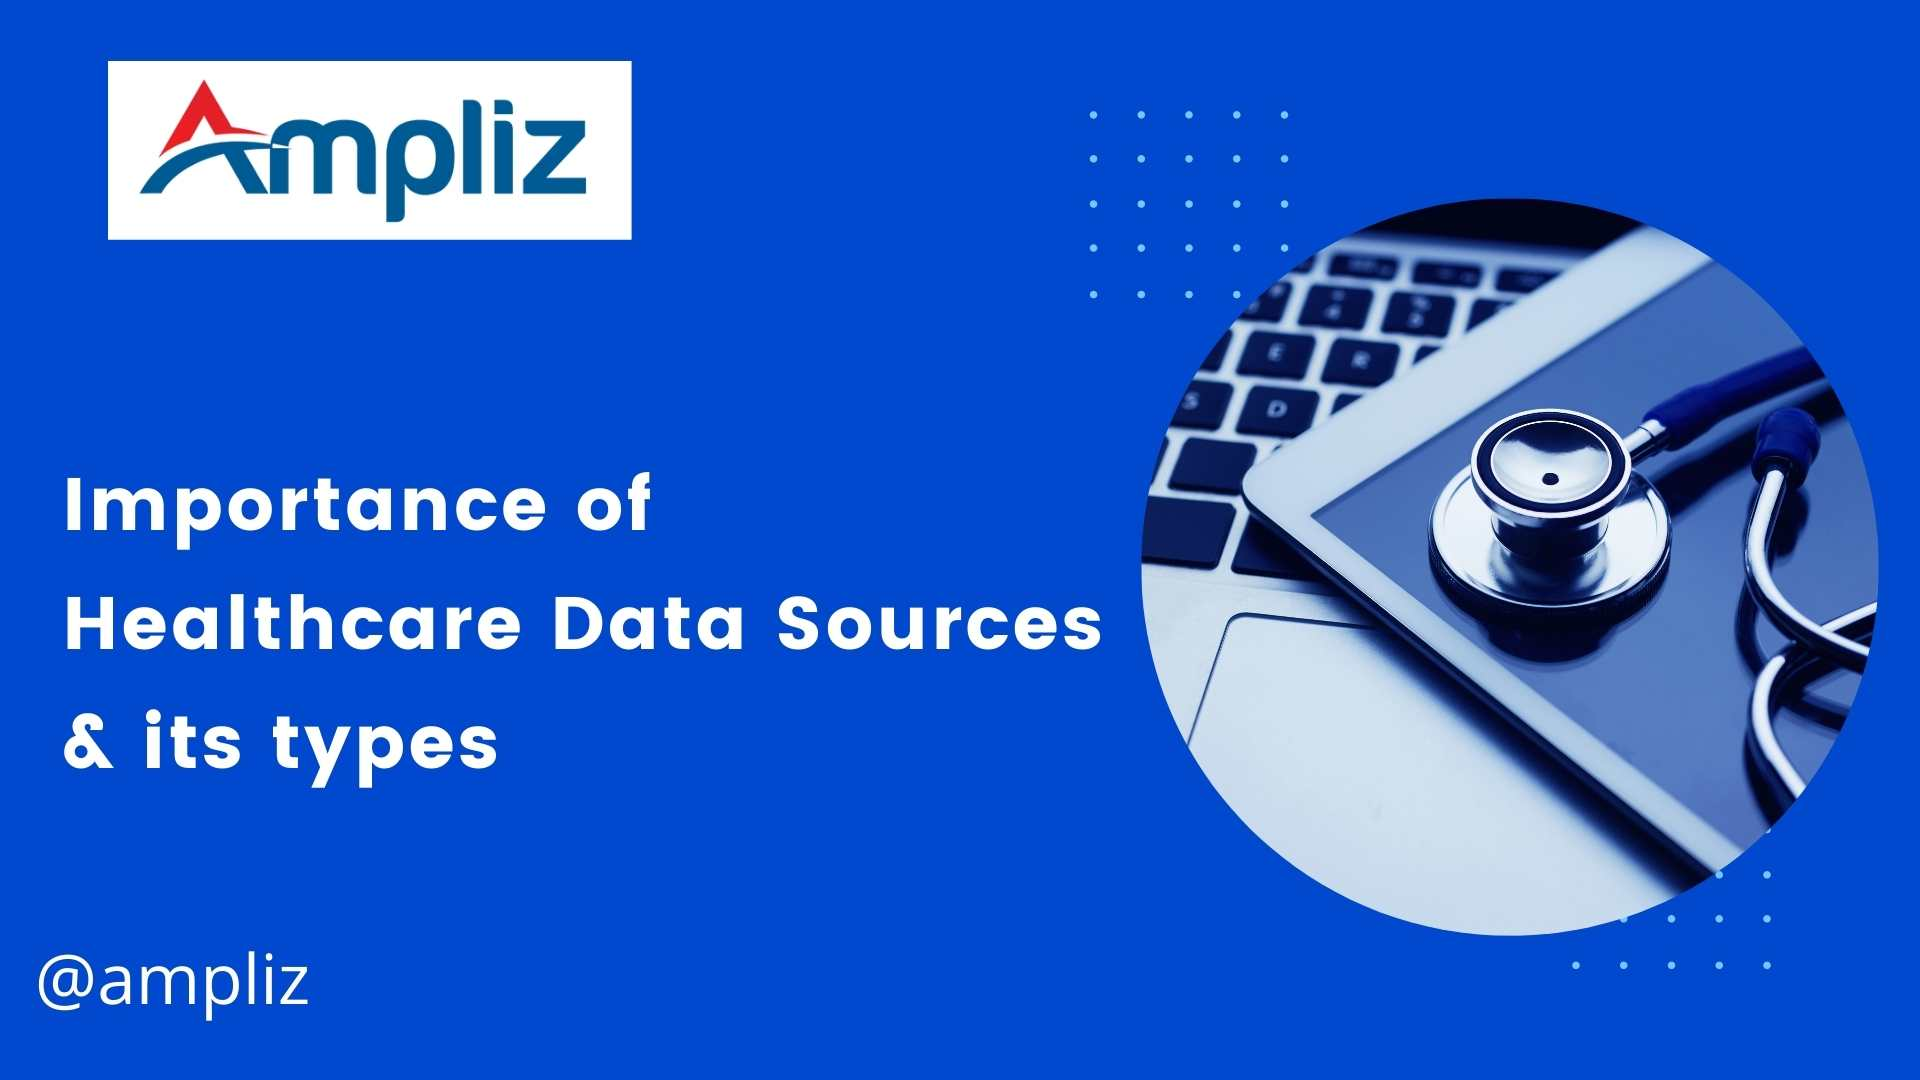 Importance of Healthcare Data Sources & its types